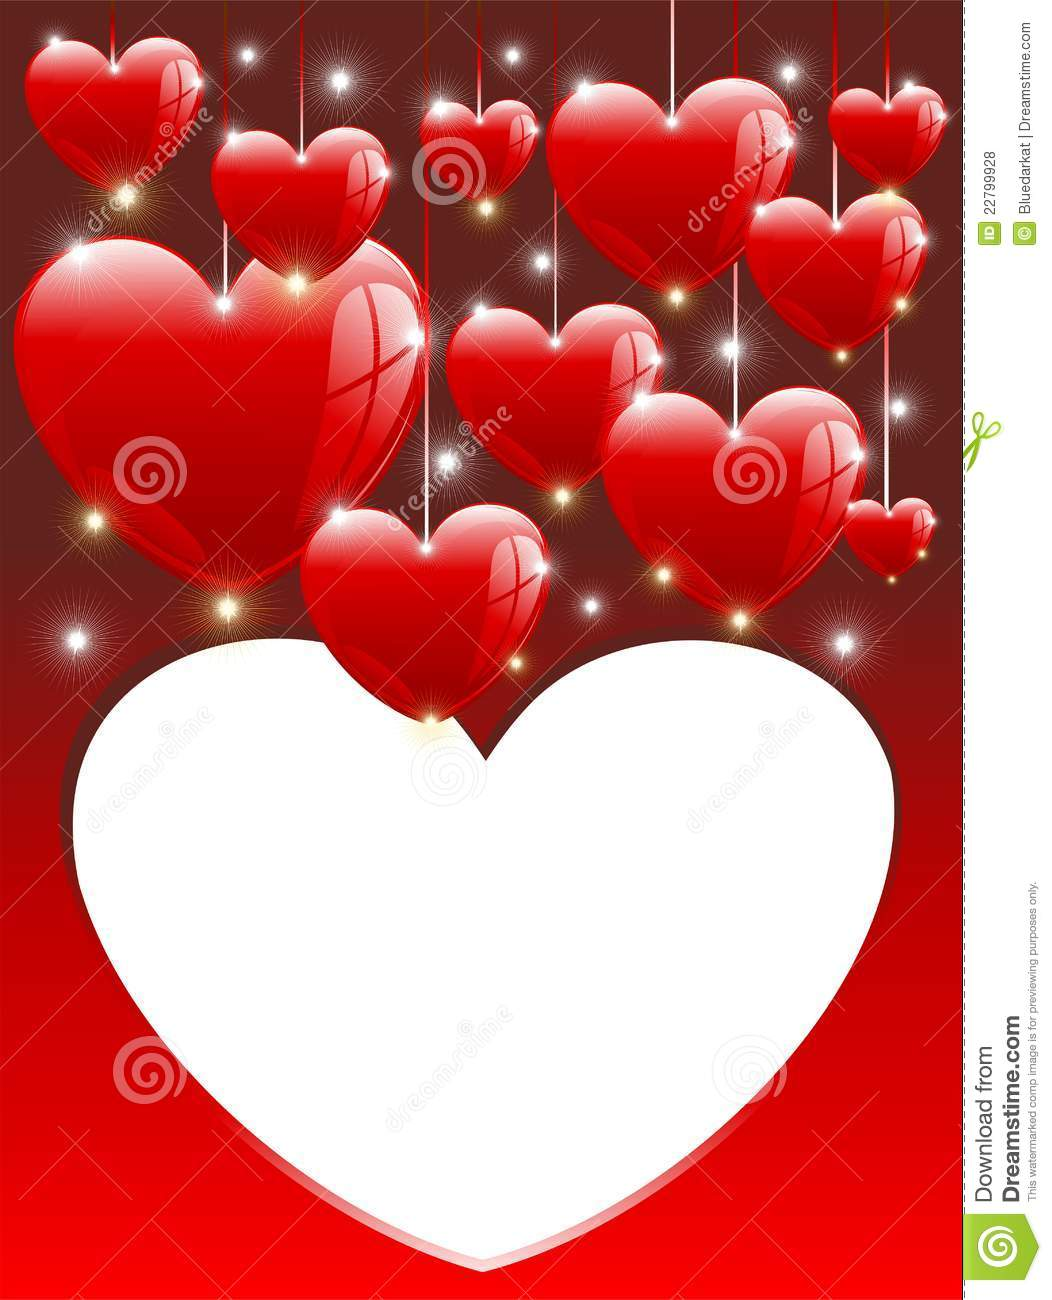 love hearts balloons card valentine's day stock vector